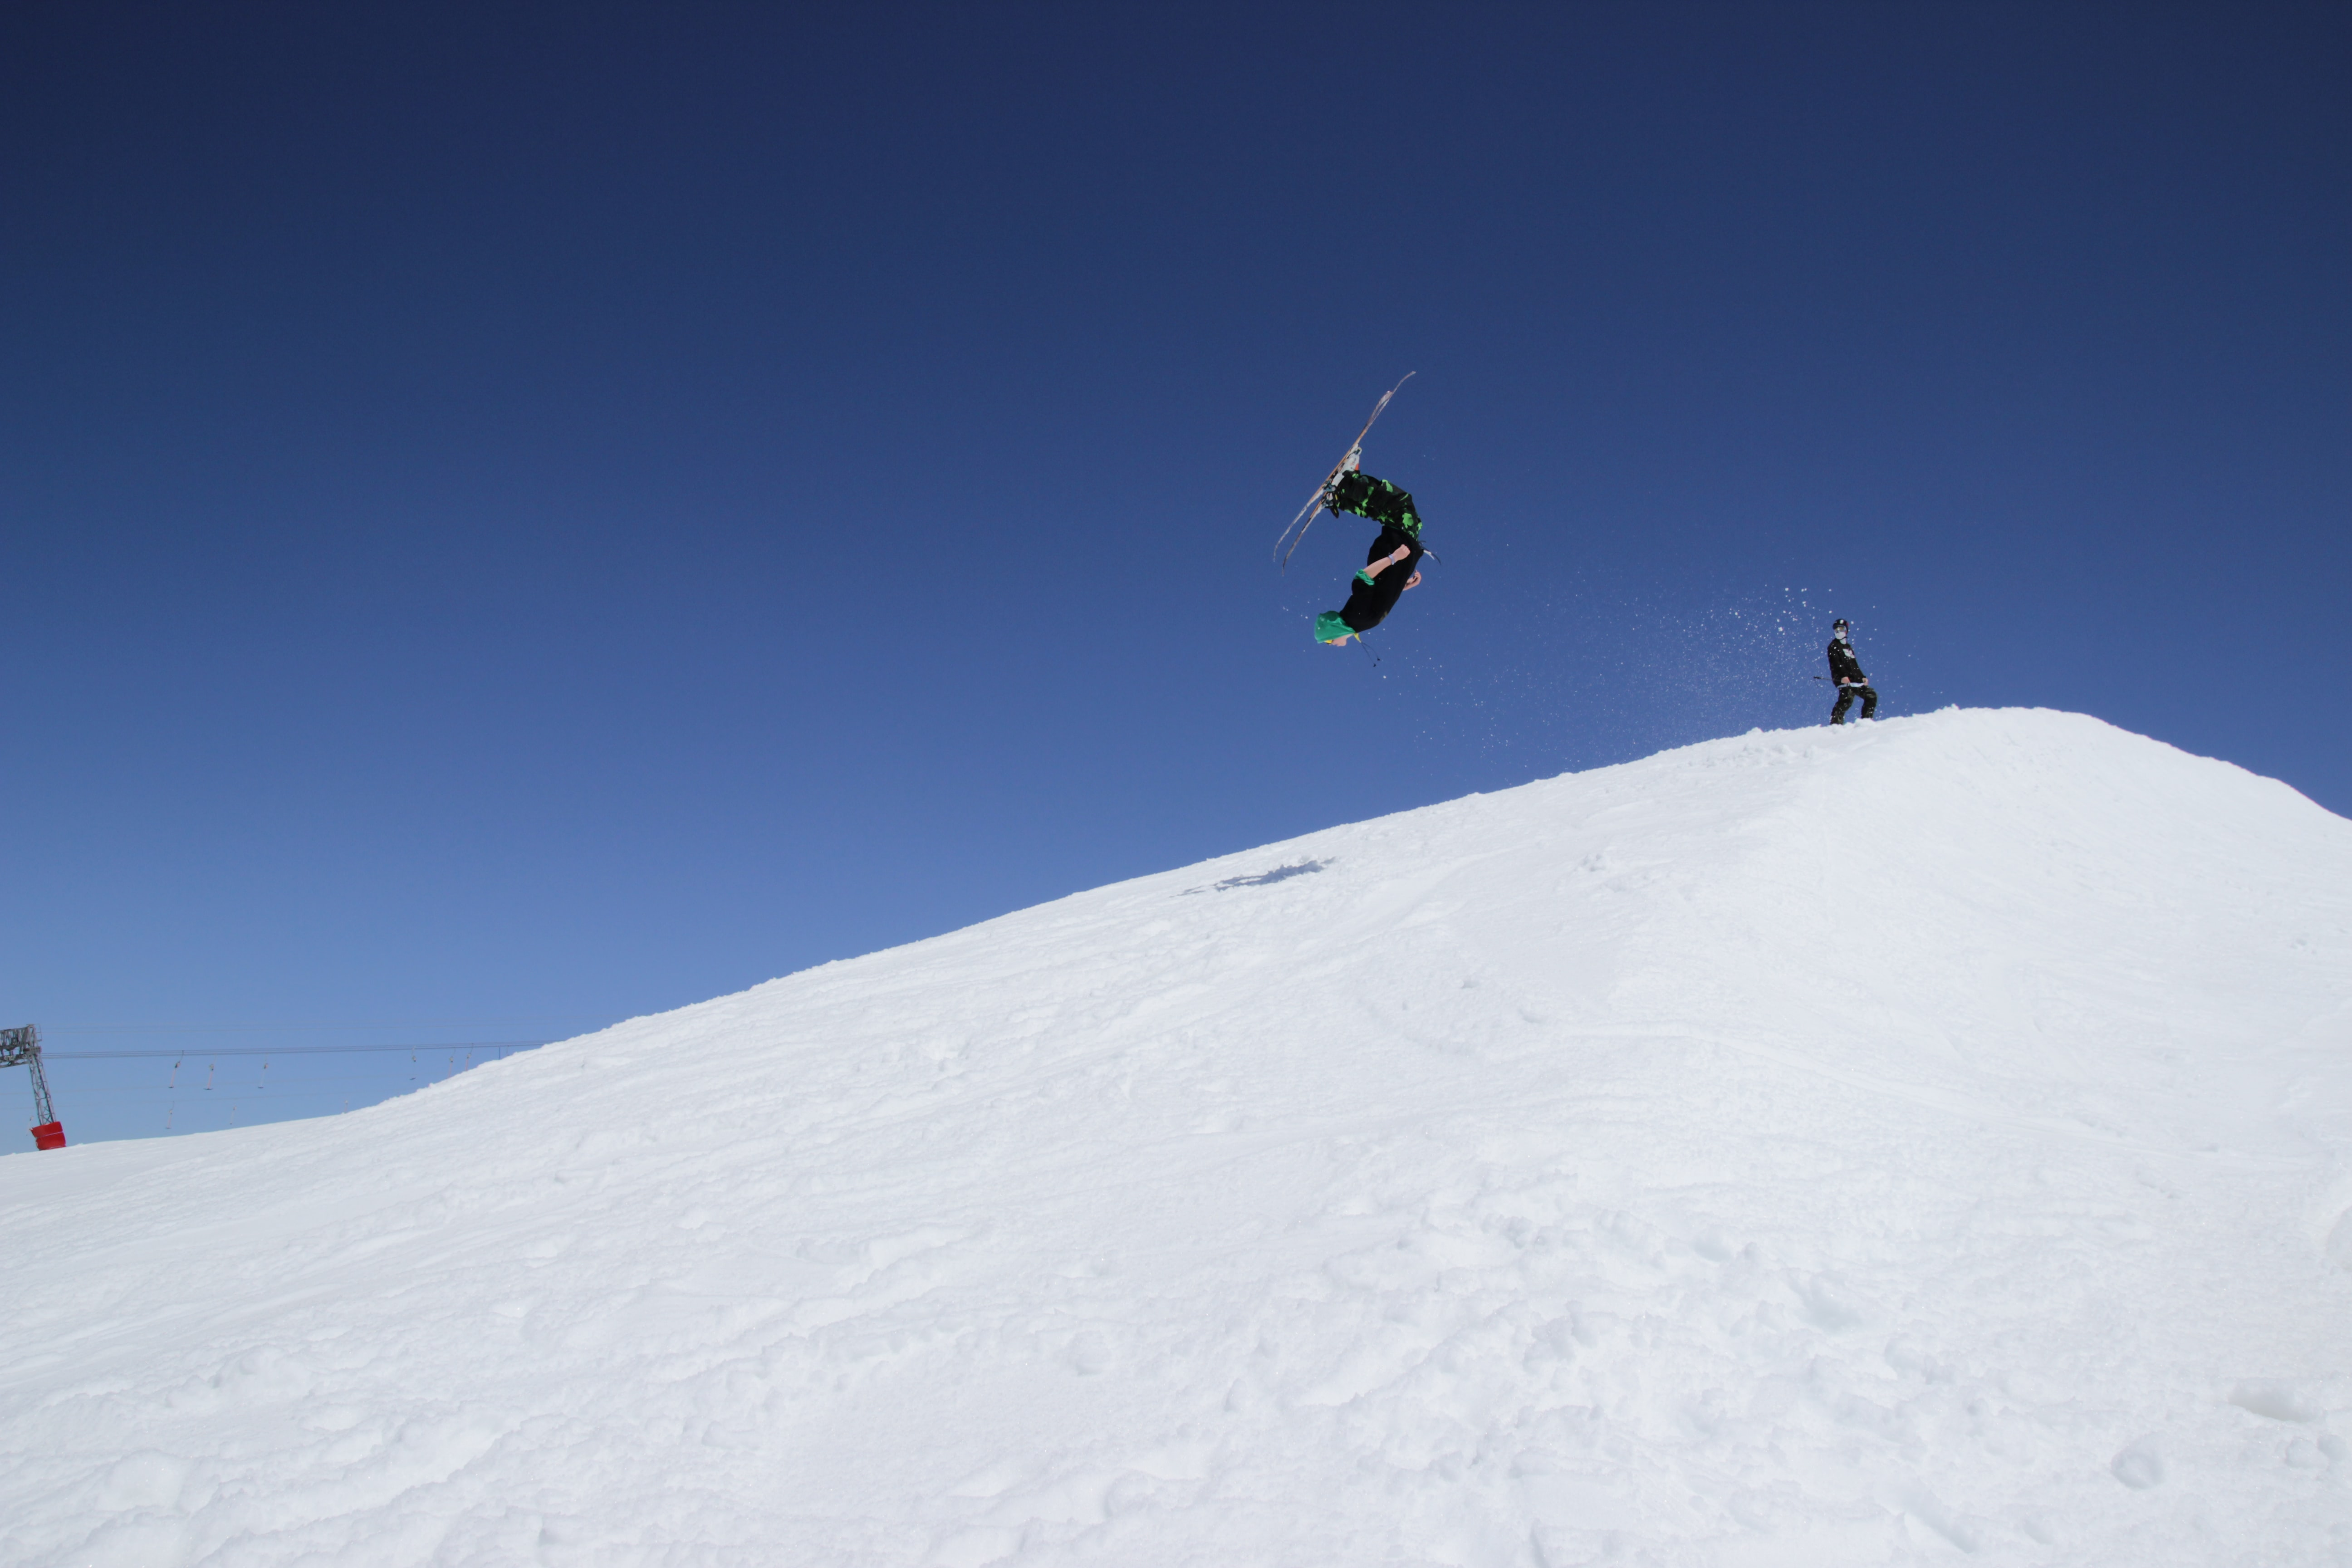 A skier upside down mid-flip over a snowy hill against a clear, blue sky